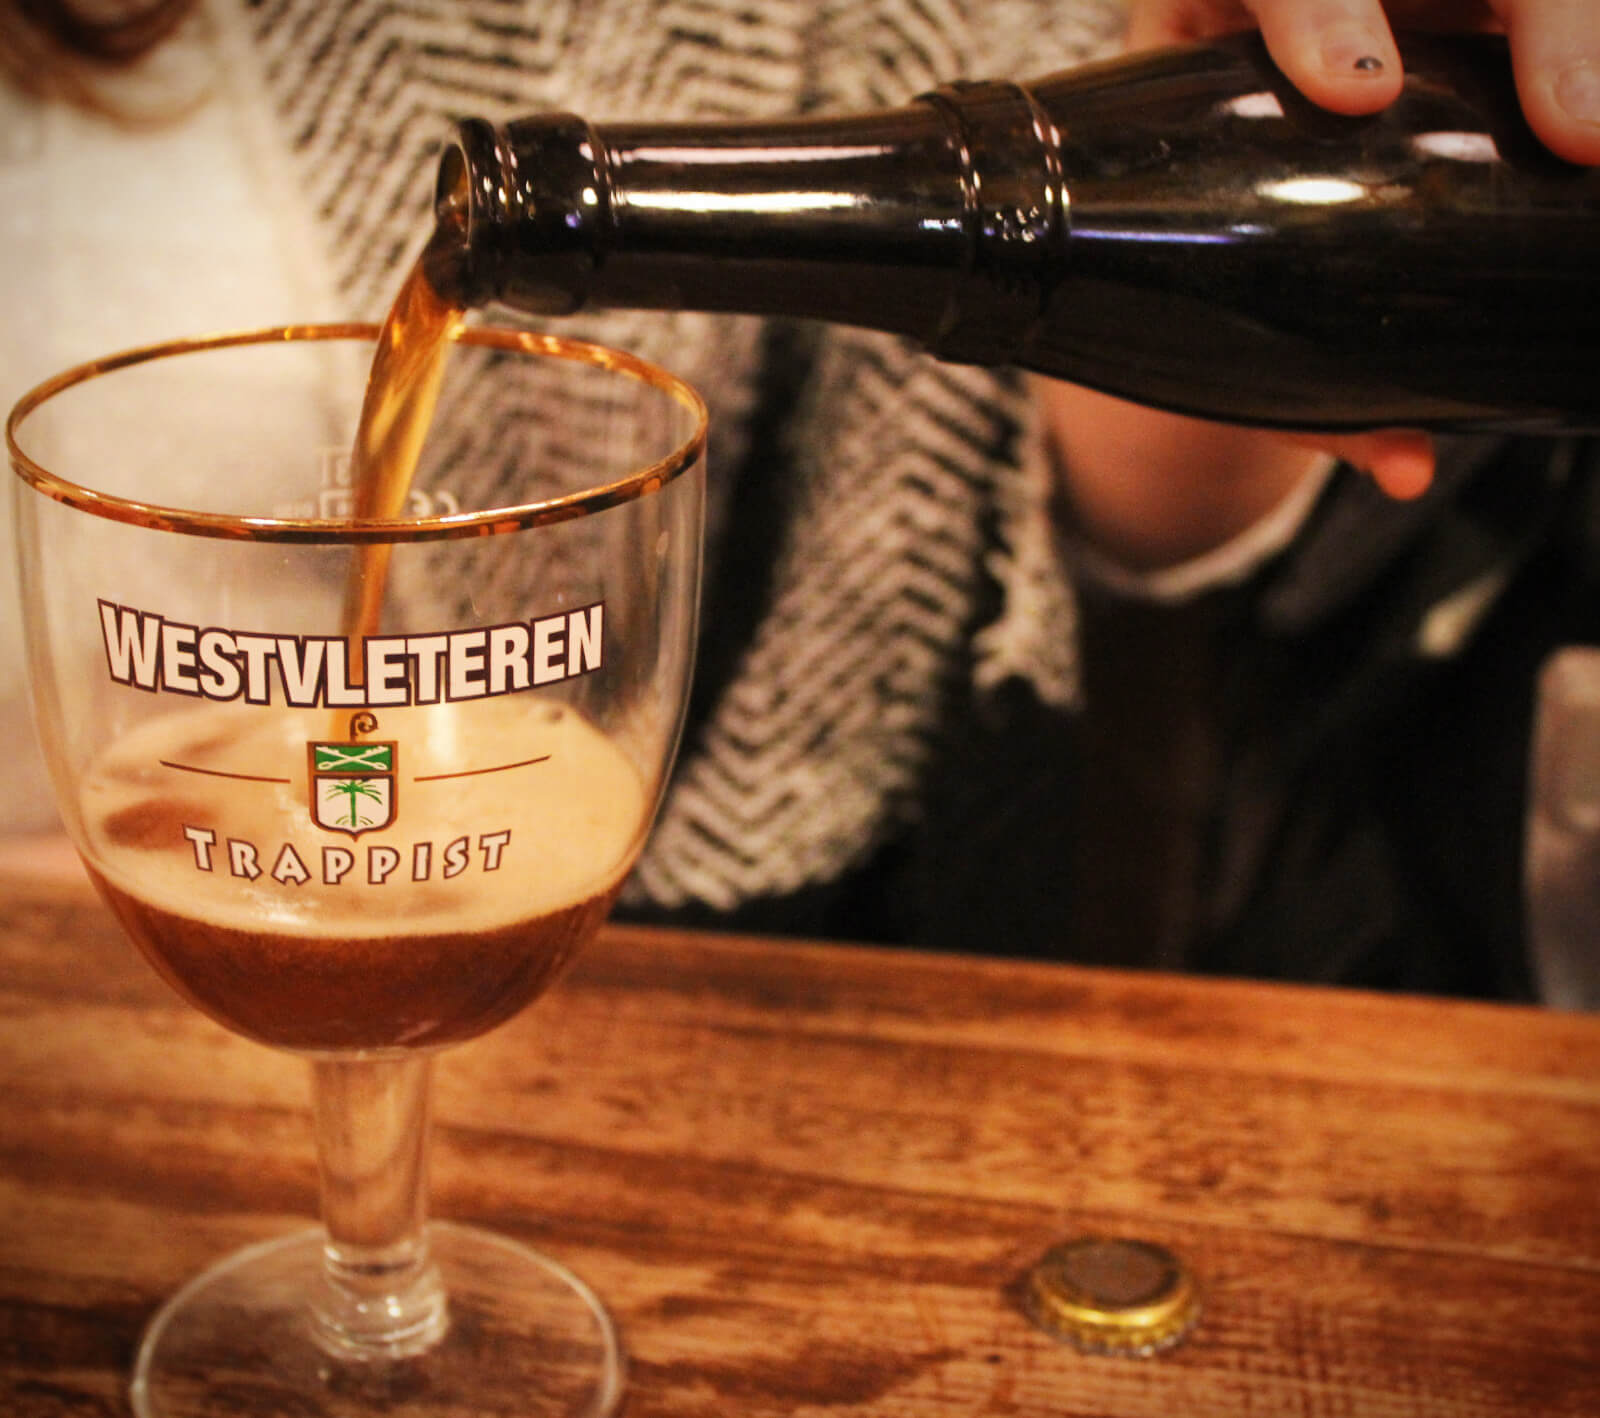 Westvleteren is the most famous Trappist beer in the world. It's also been ranked as the best beer in the world for decades! It's unlabelled and super difficult to get unless you're in Belgium. Oh, and it's INSANELY delicious.